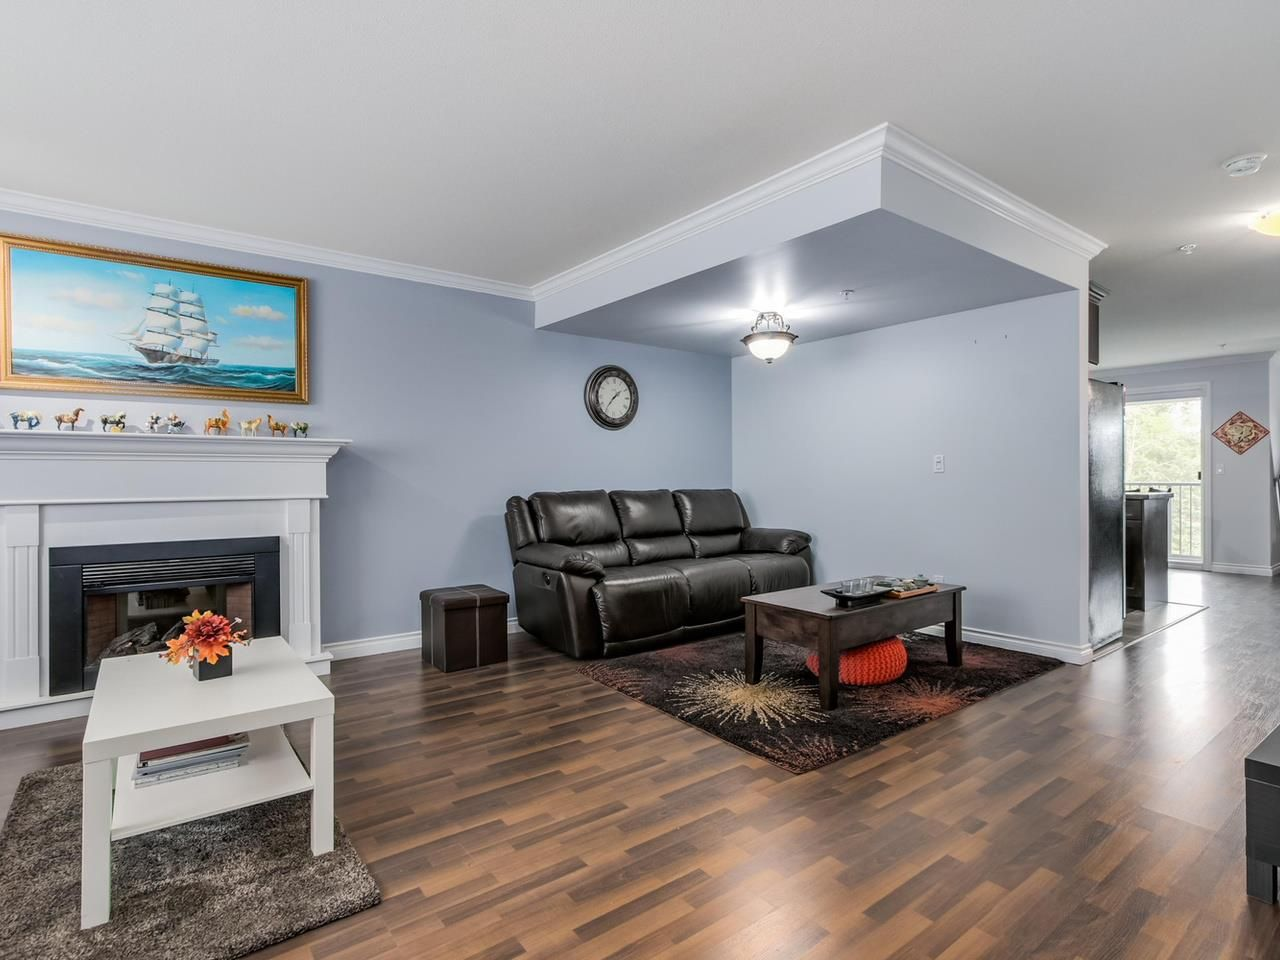 """Photo 5: Photos: 10 11255 132 Street in Surrey: Bridgeview Townhouse for sale in """"FRASERVIEW TERRACE"""" (North Surrey)  : MLS®# R2086692"""